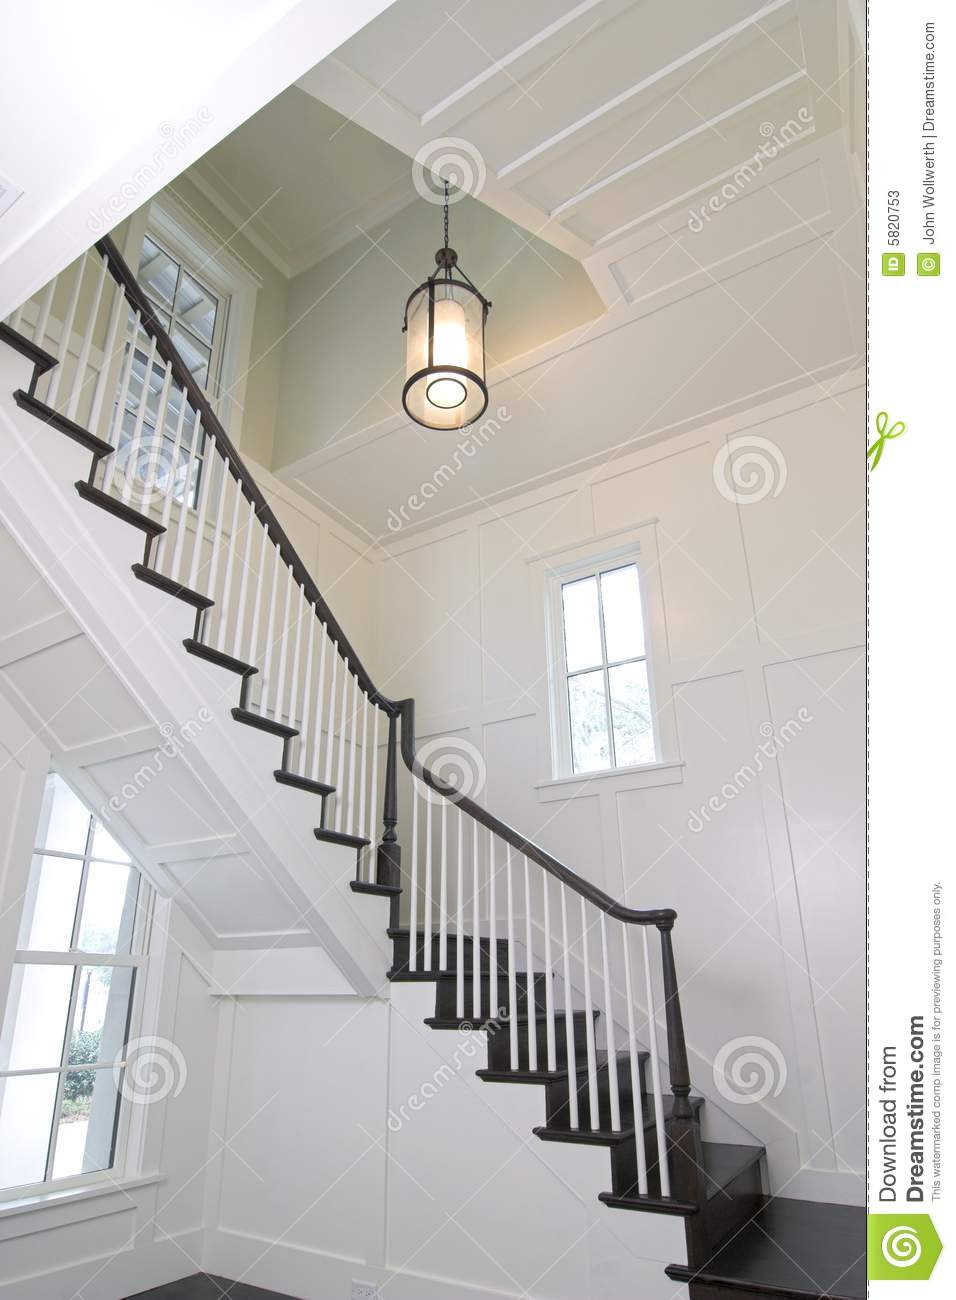 Curved staircase stock photos image 5820753 for Curved staircase